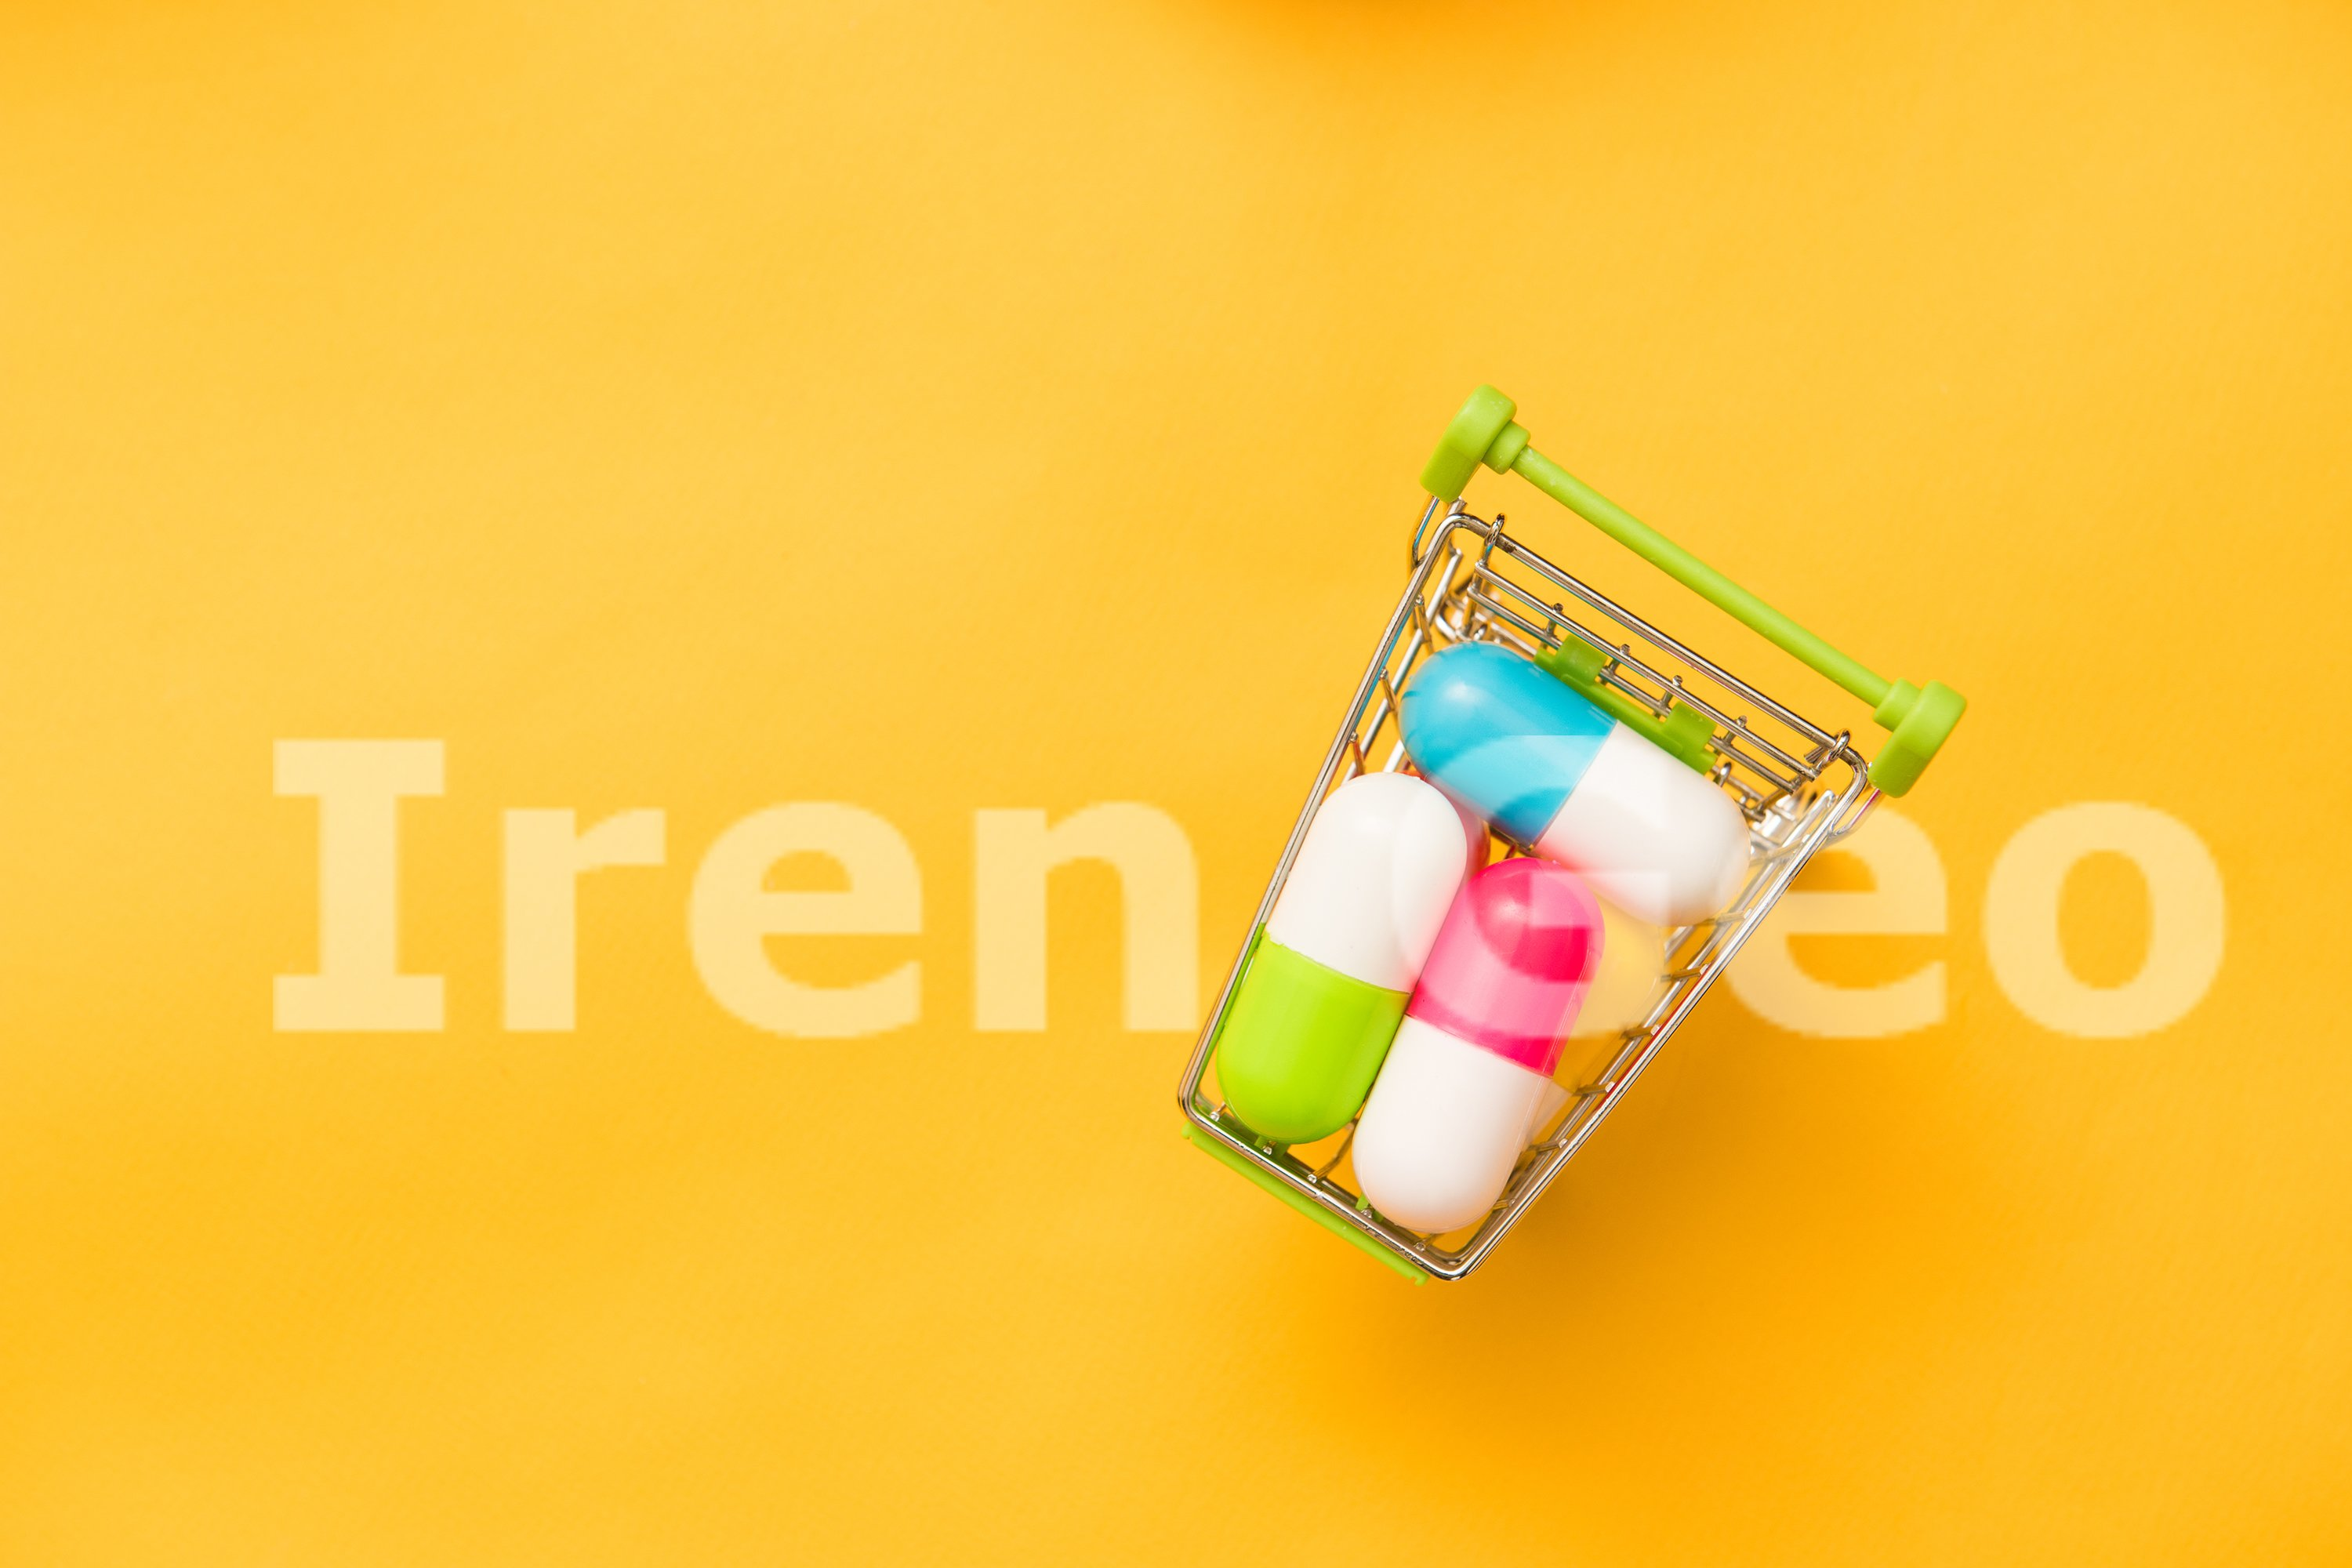 Small shopping cart full of pills on yellow background example image 1